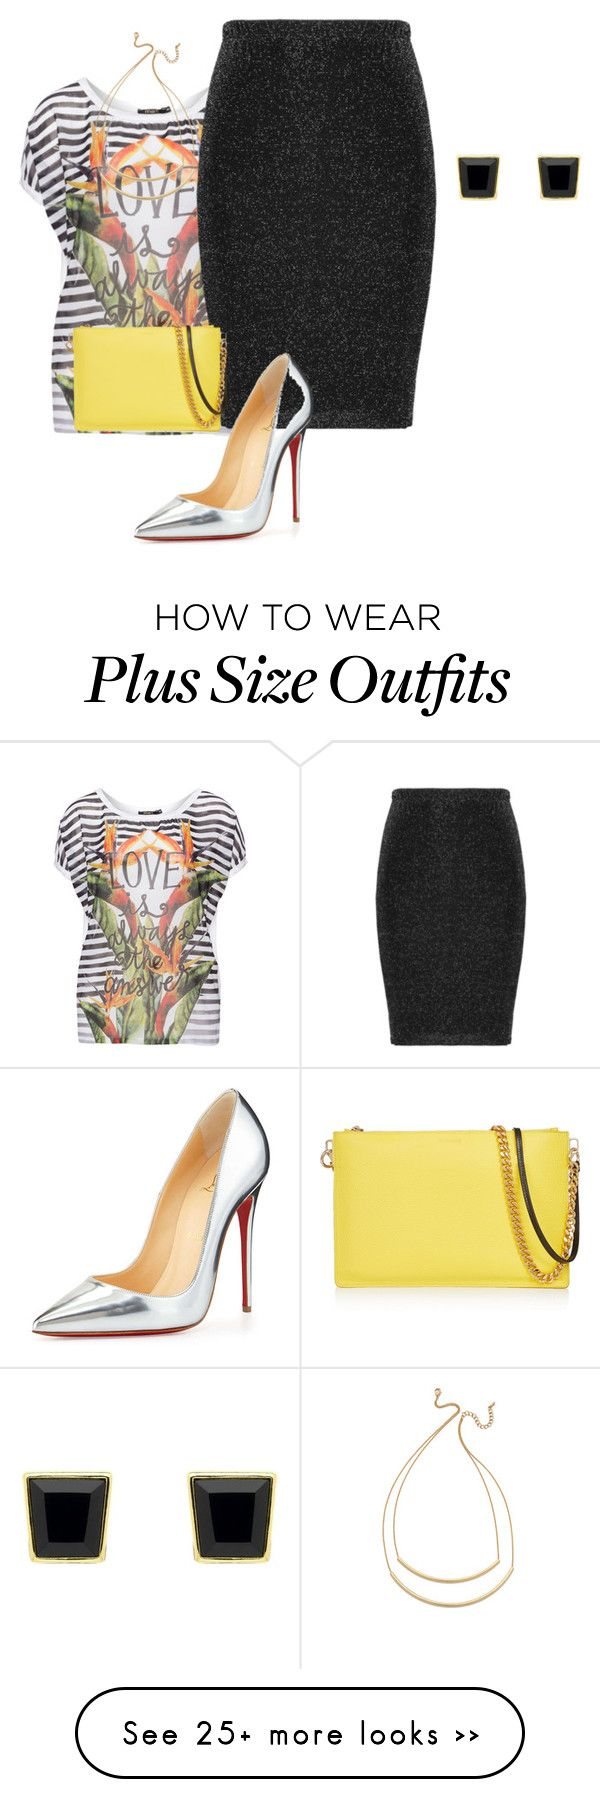 """plus size eclectic night out"" by kristie-payne on Polyvore featuring Mat, Zizzi, Christian Louboutin, Jil Sander, Jules Smith and Monet"